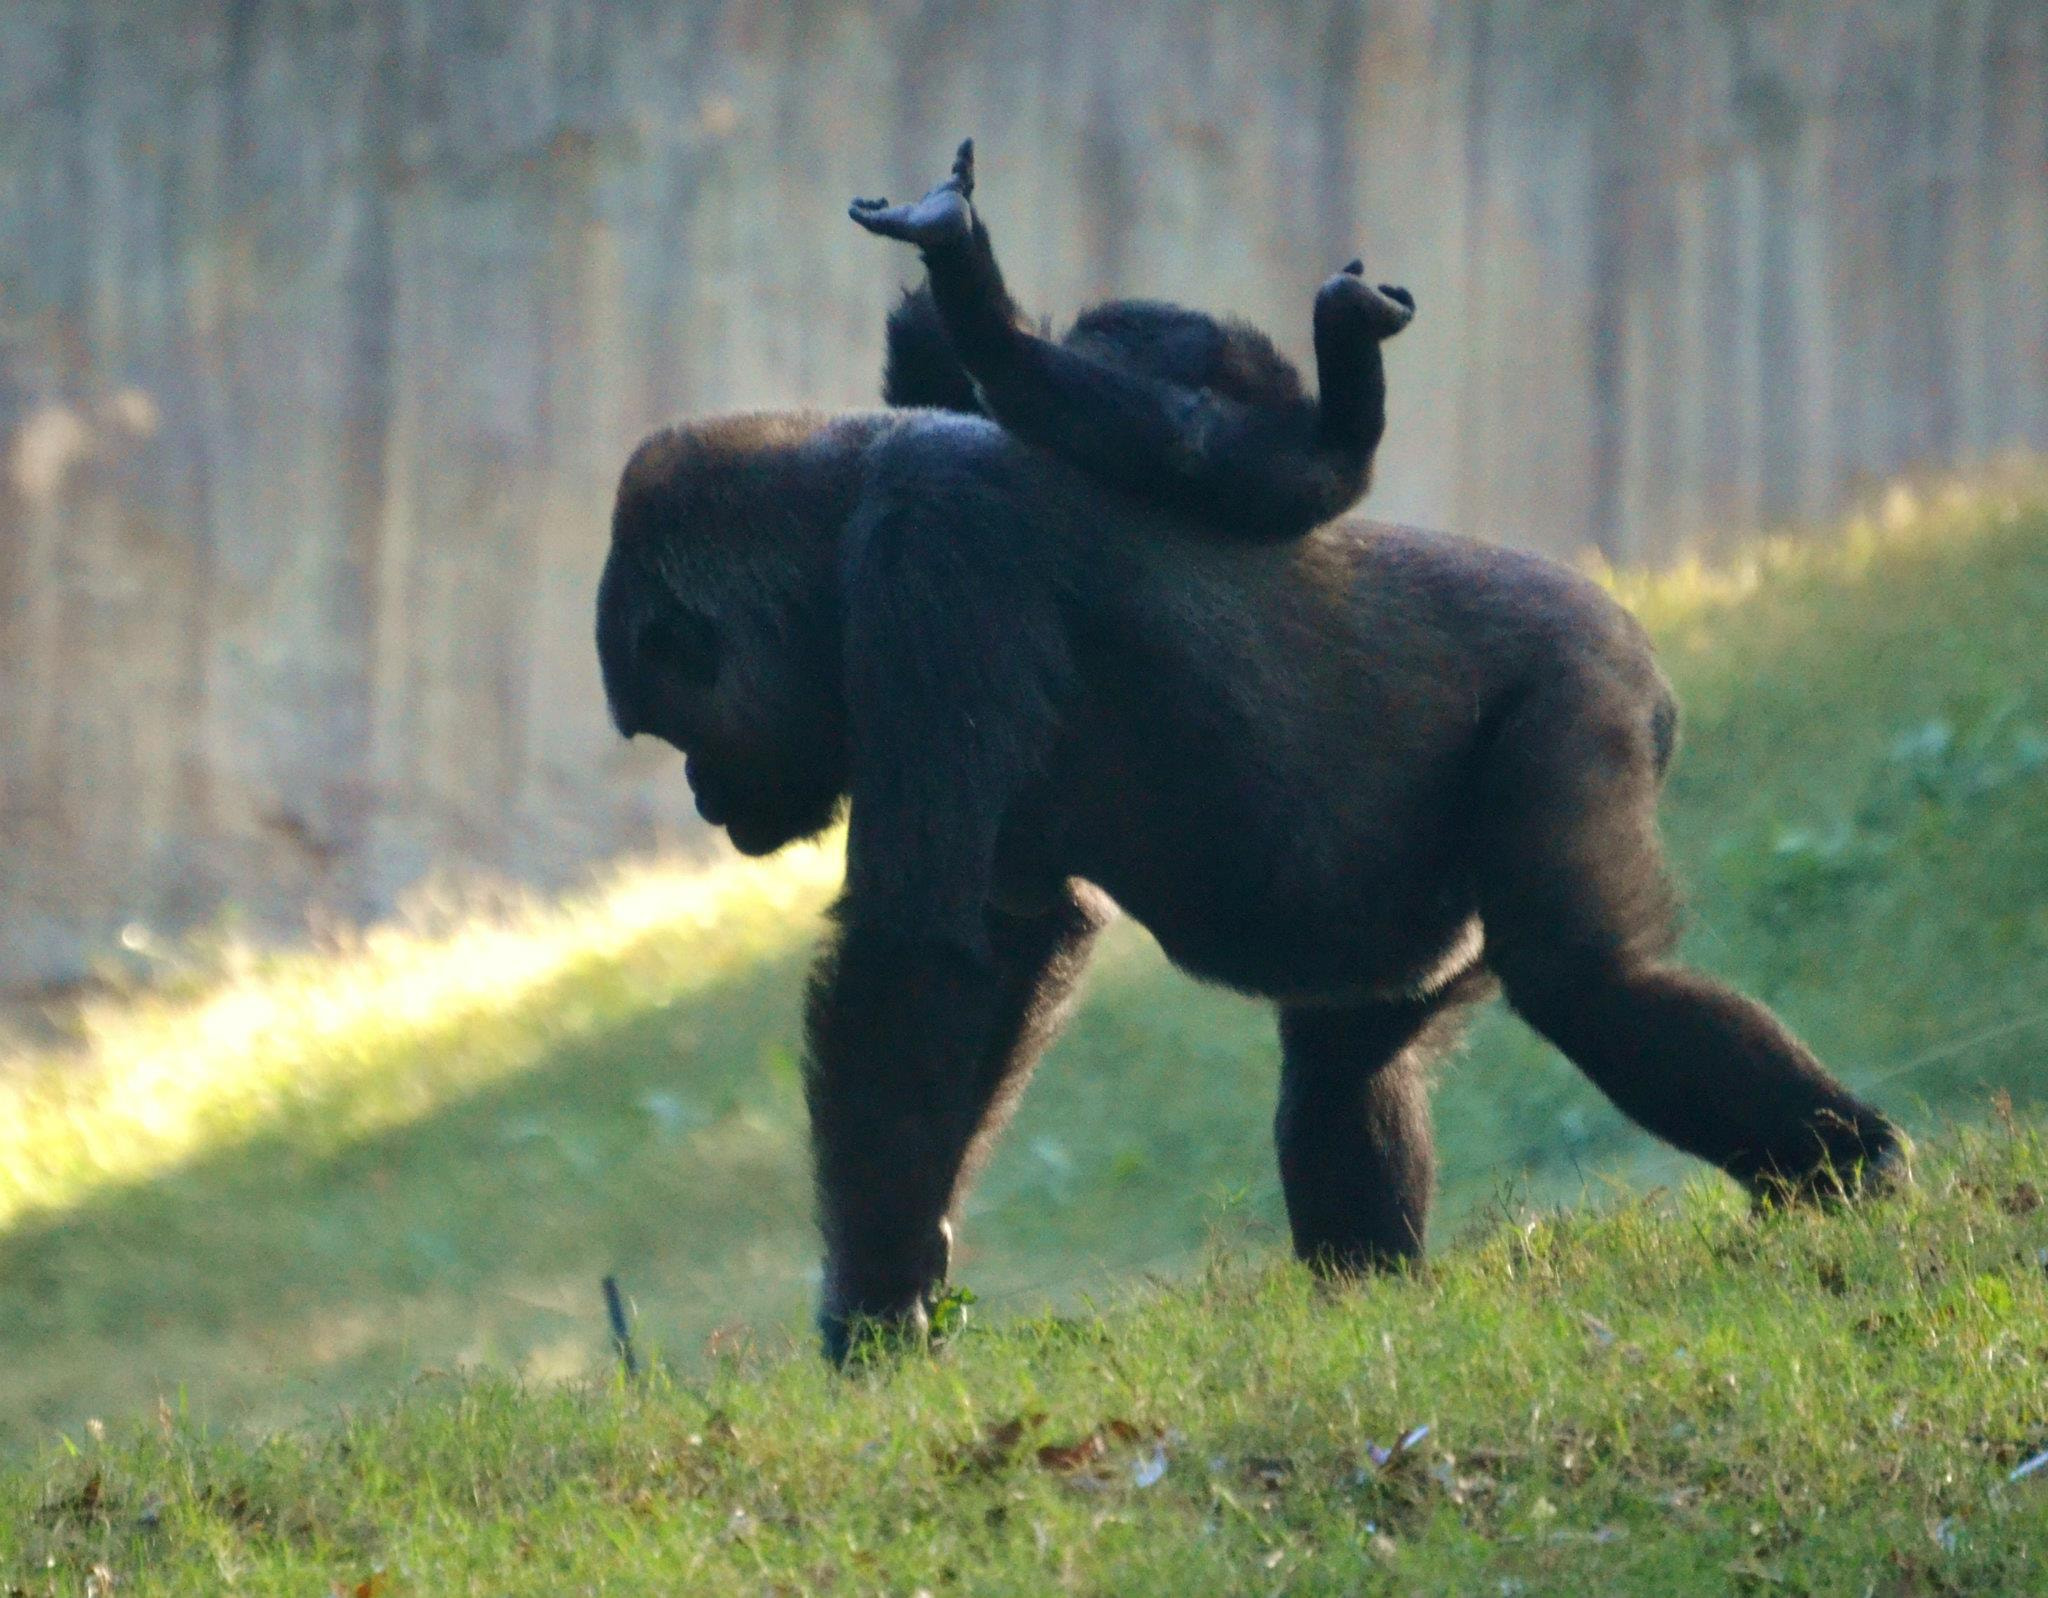 Photograph Piggy-Back Ride by Michael Fitzsimmons on 500px